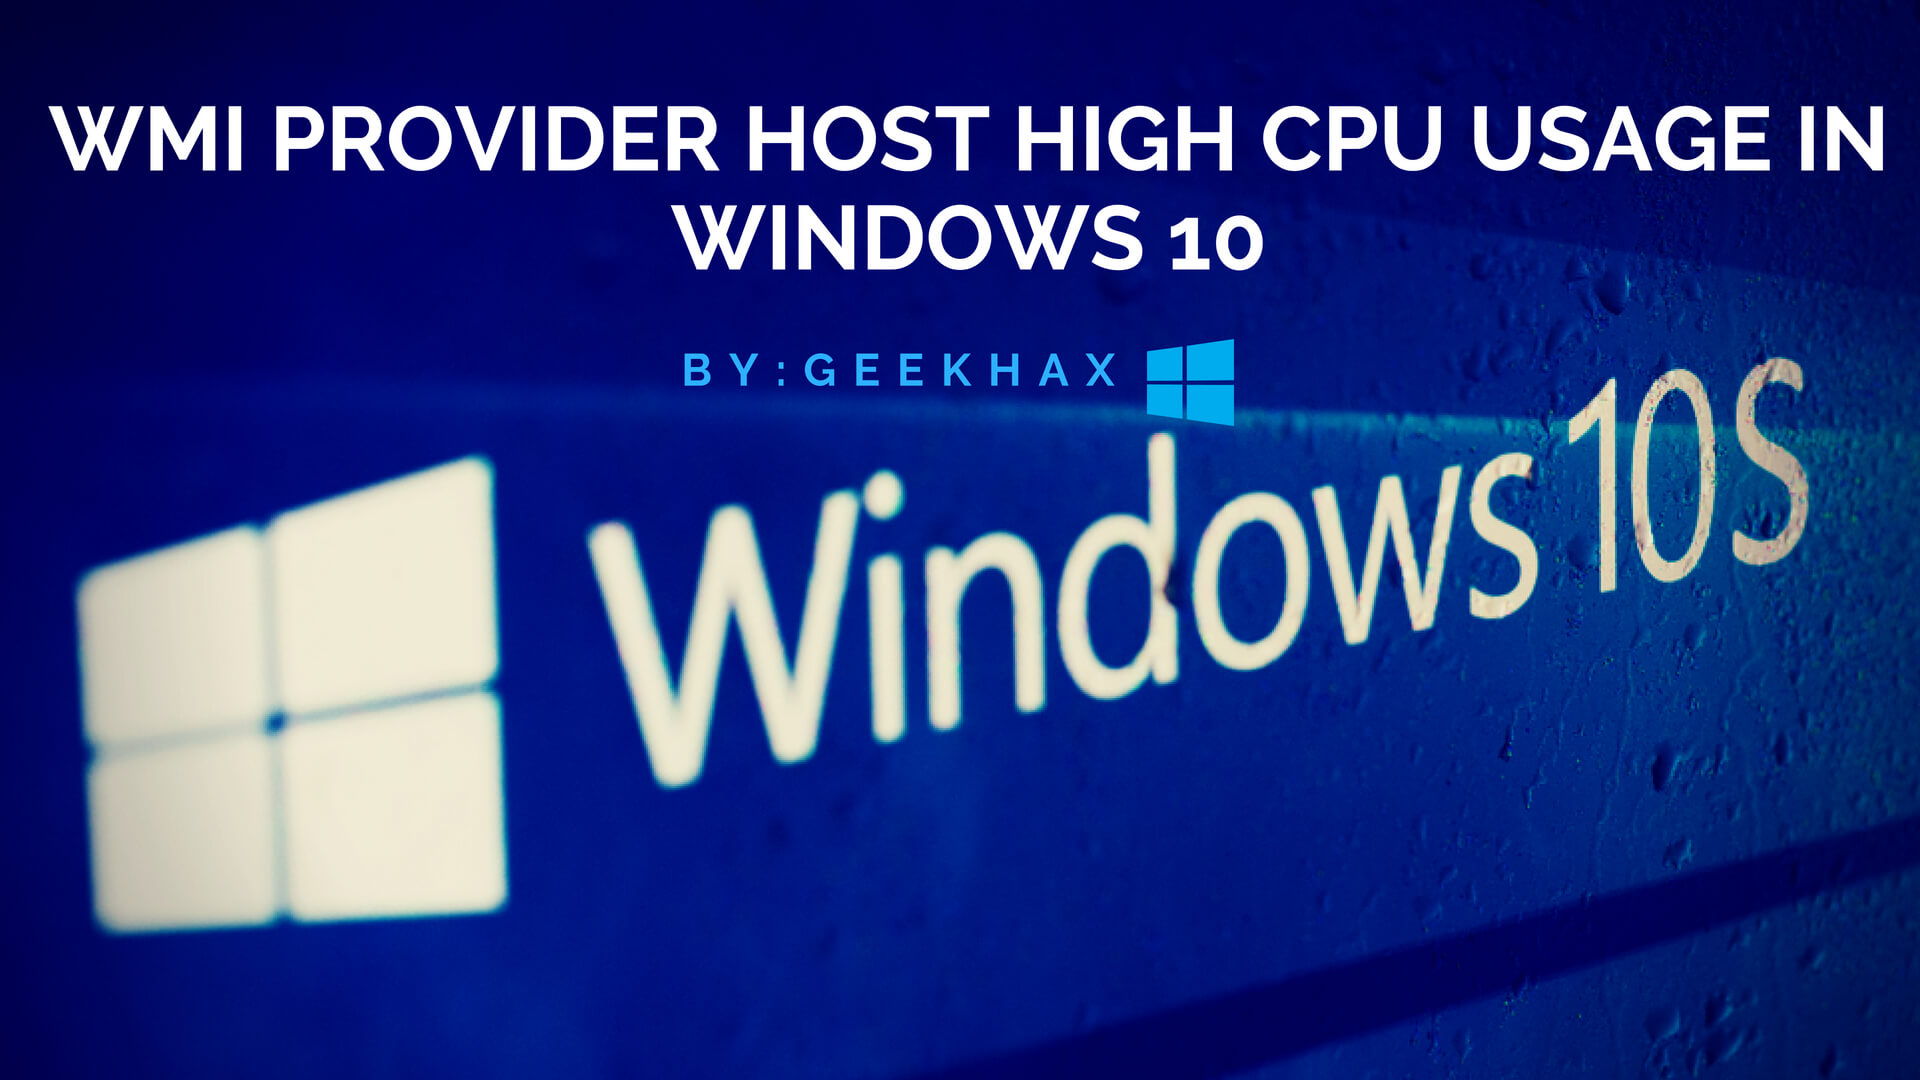 WMI Provider Host High CPU Usage Windows 10